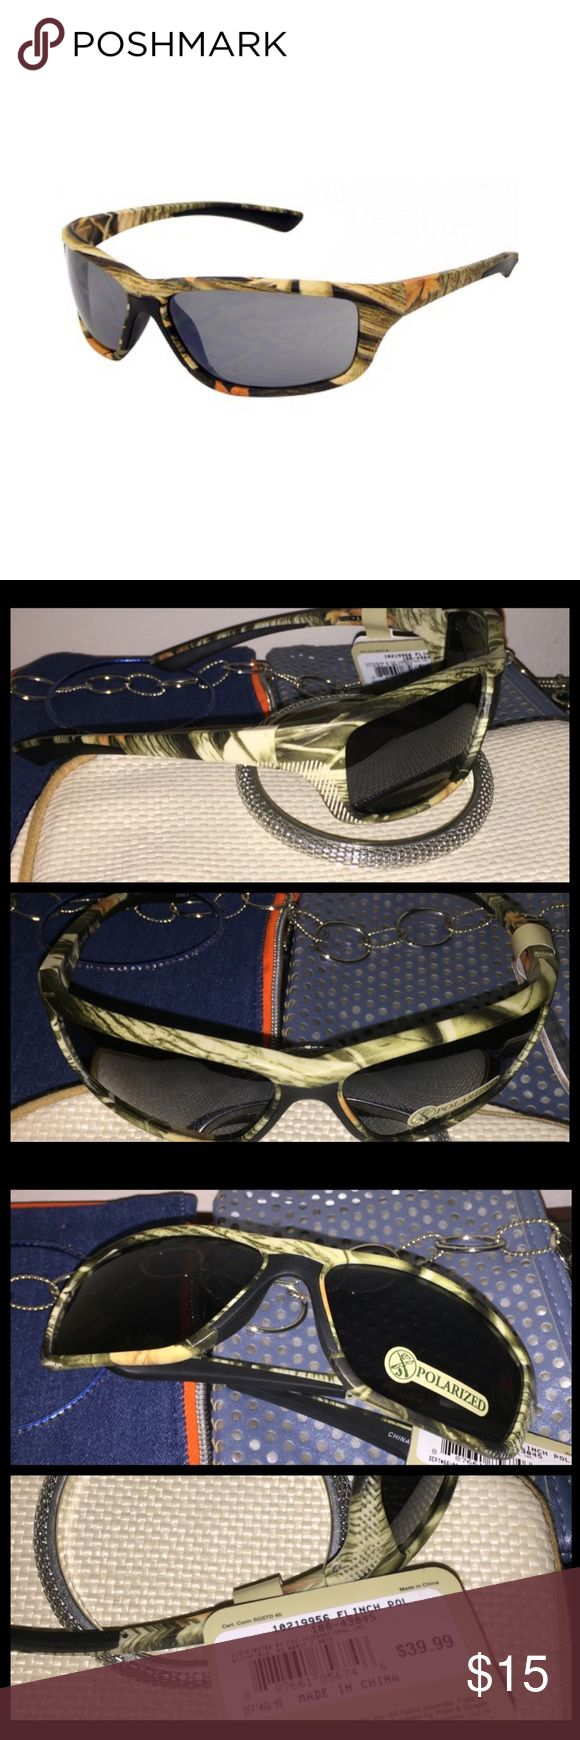 Field n Stream Men's Hunting Polarized Sunglasses Field & Stream By Foster Grant Polarized Full Rim Sport Wrap Sunglasses  Perfect for hunting n sports, Reduces glare for great visibility Model - Flinch Color - Camouflage $40  100% UVA n UVB protection Eye Size 53 Bridge/Temple Size 16/125   💯Brand new HIGH QUALITY 💯What u see is what u get ⚡Next day ship⚡ ✔Offers welcome on items $13+ 🚫No Trades 💖Just got💍engaged 💍 5-21 - 3yrs Long distance, we r working Very hard to be together…